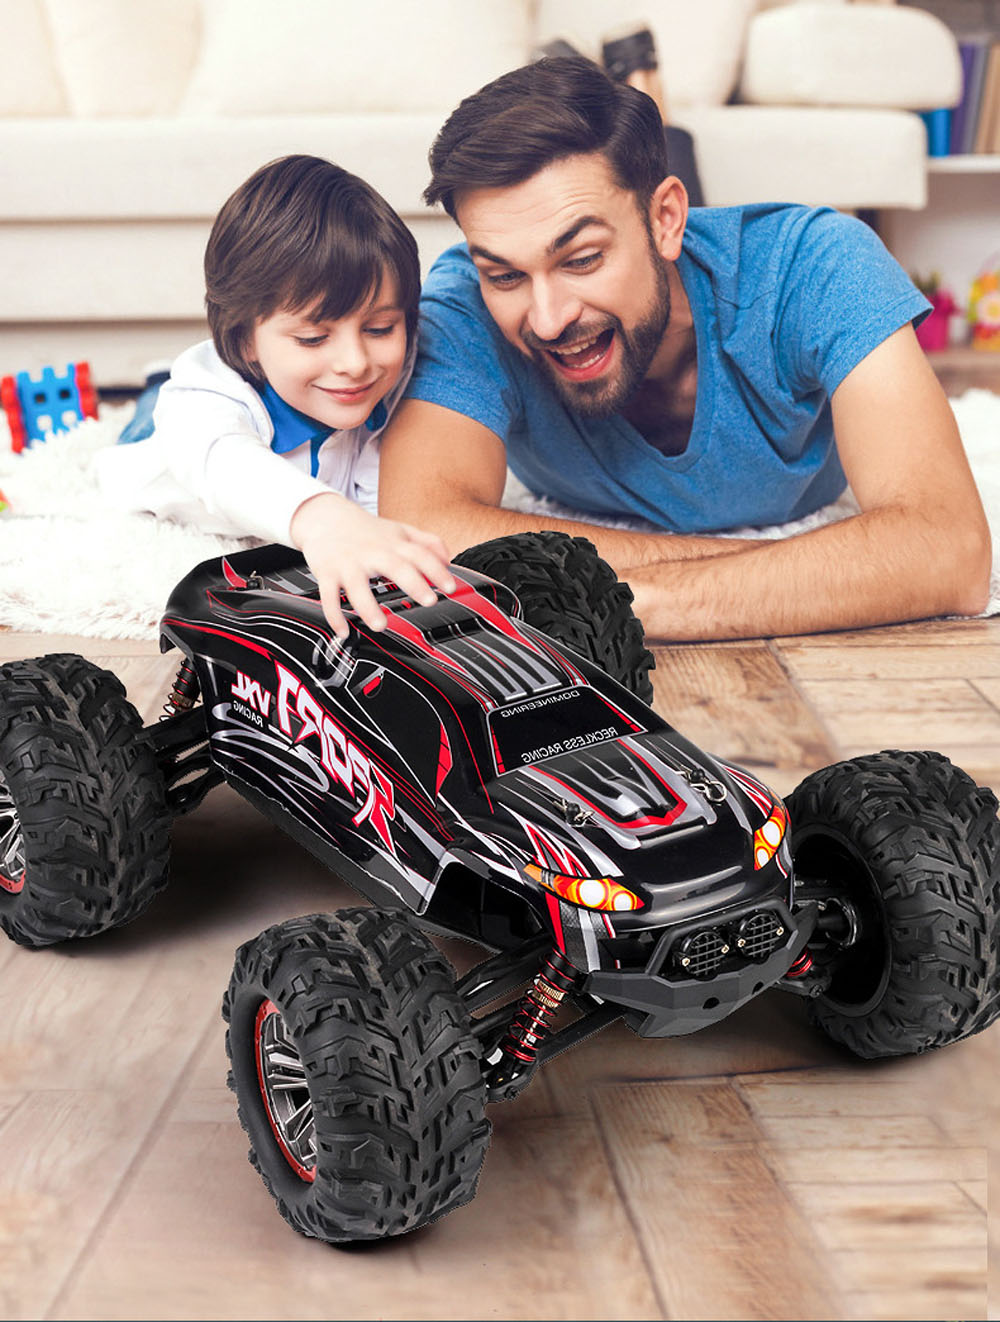 Off-road Crawler Vehicle Alloy Full Scale 1:10 Waterproof Bigfoot 4WD High Speed Model Car Amphibious RC Remote Control Car Toy - Red Brushless x-04A